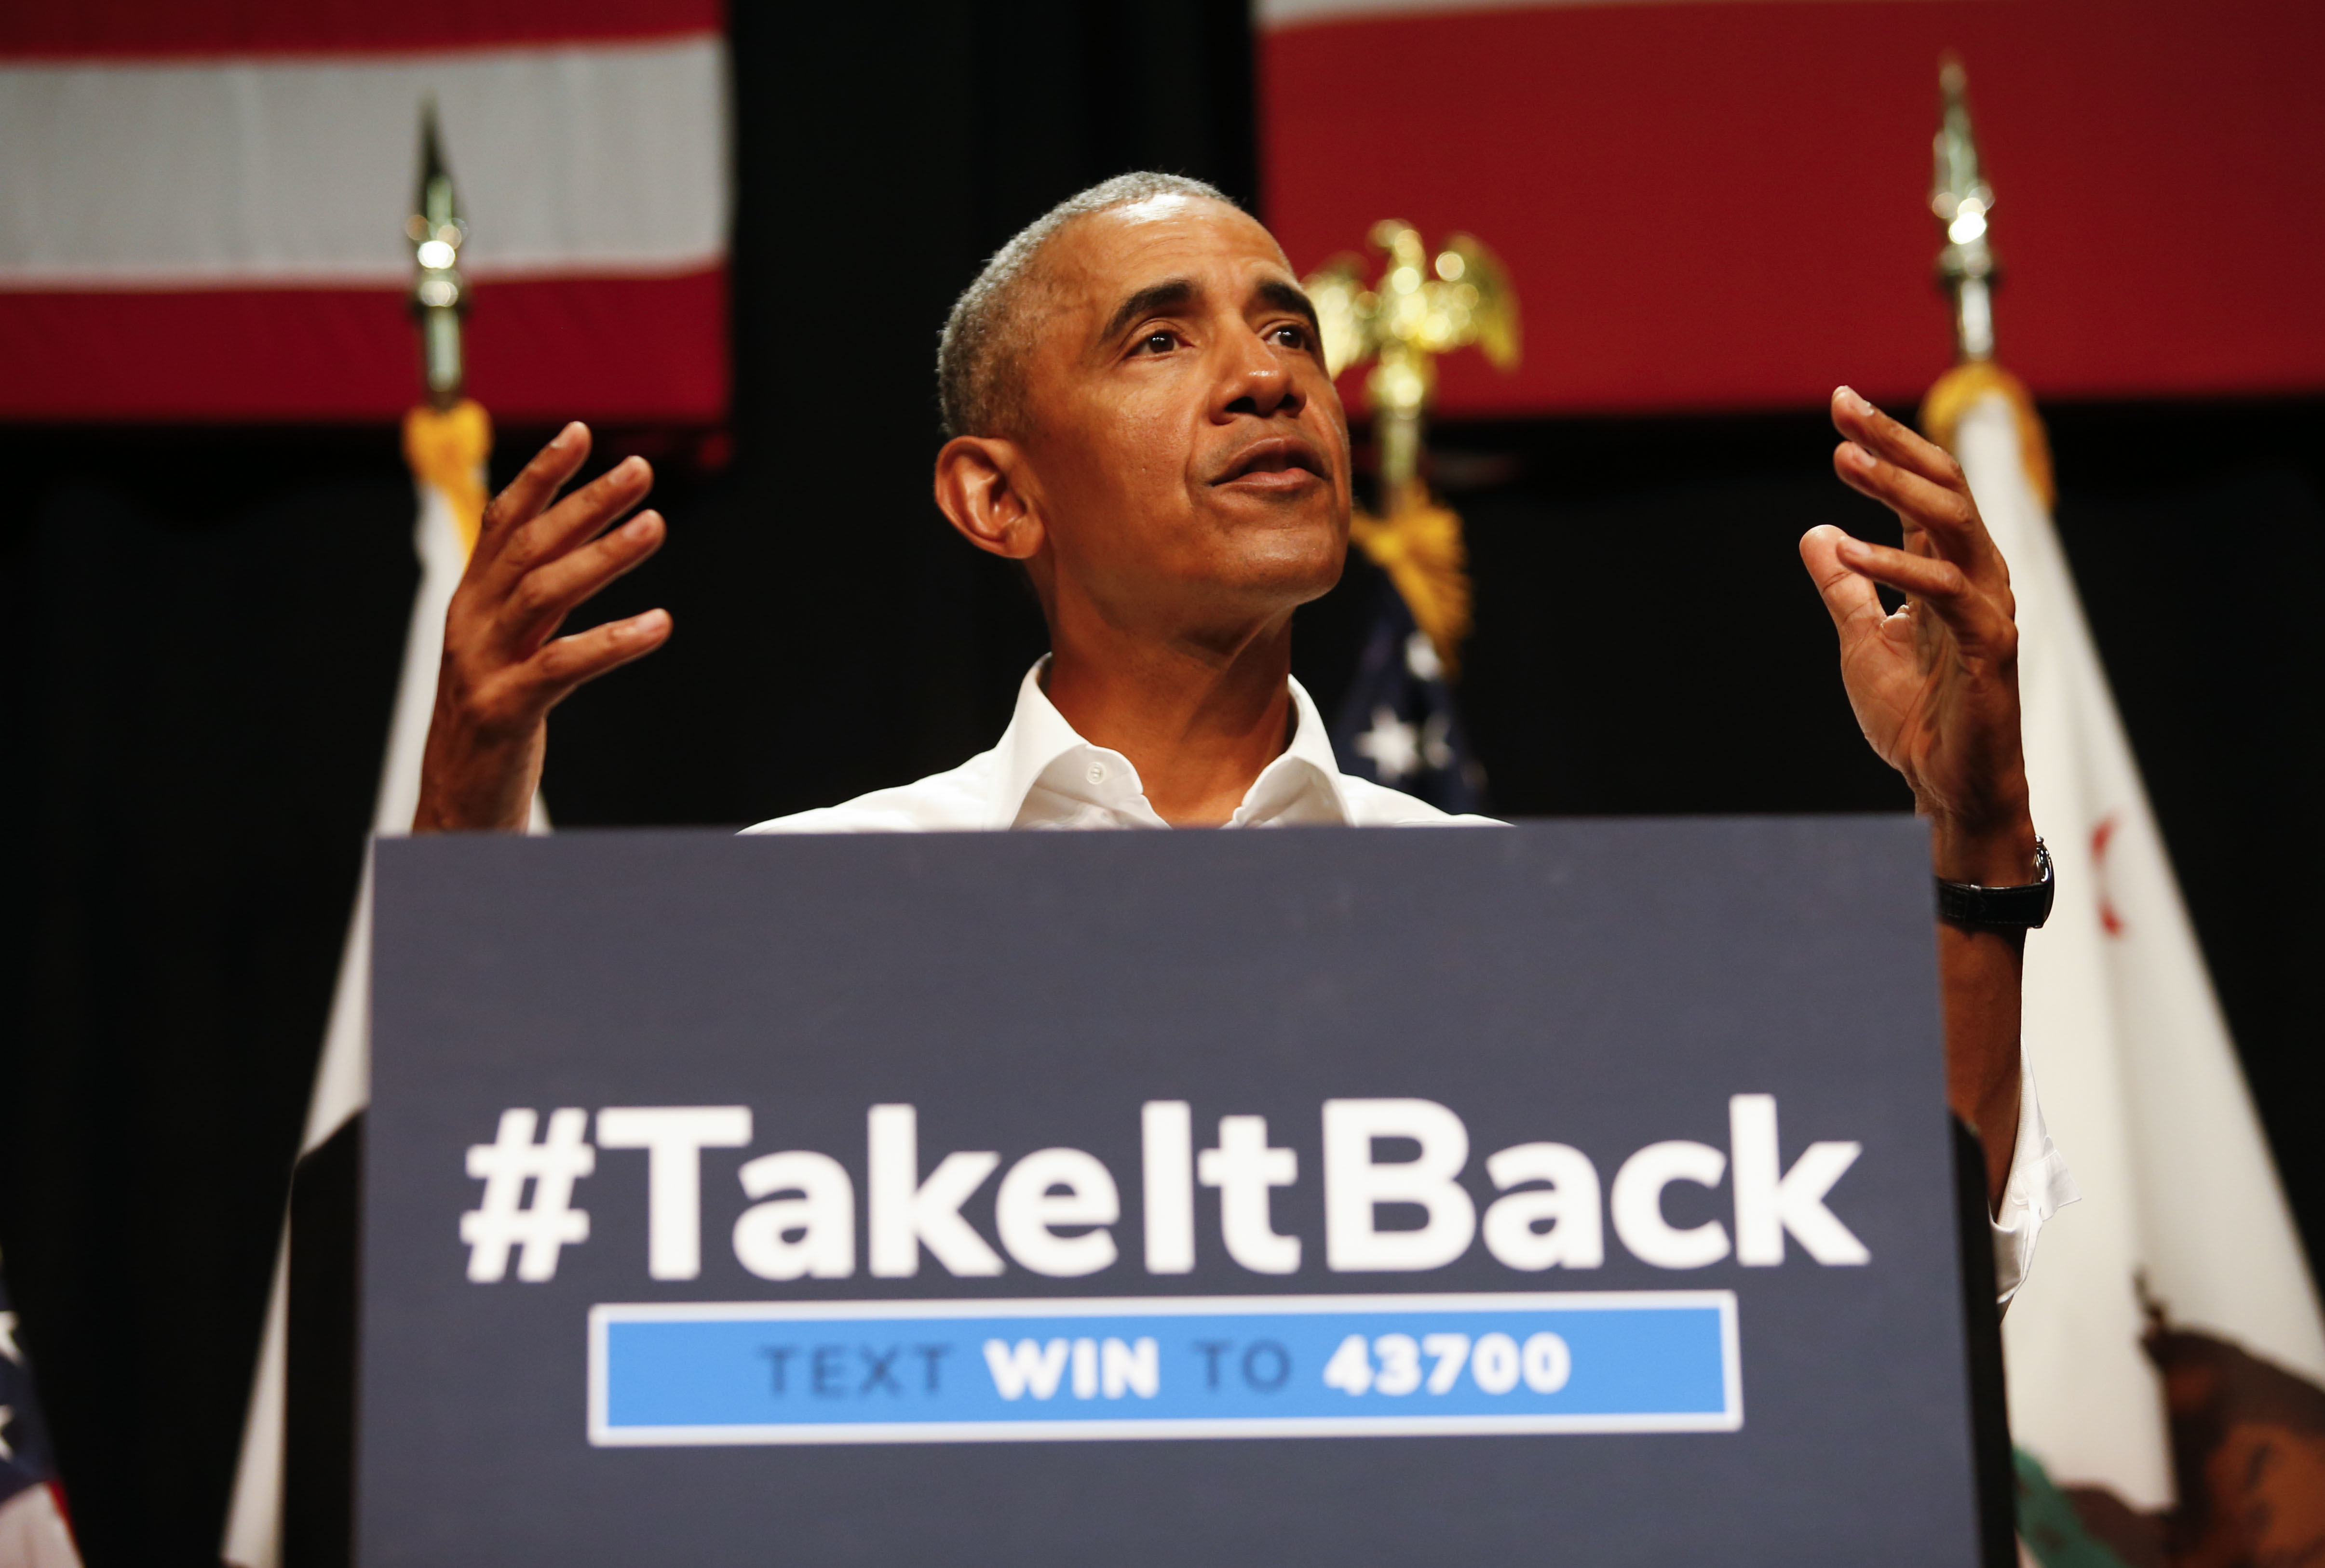 Obama reminds voters why they backed Trump - Washington Times